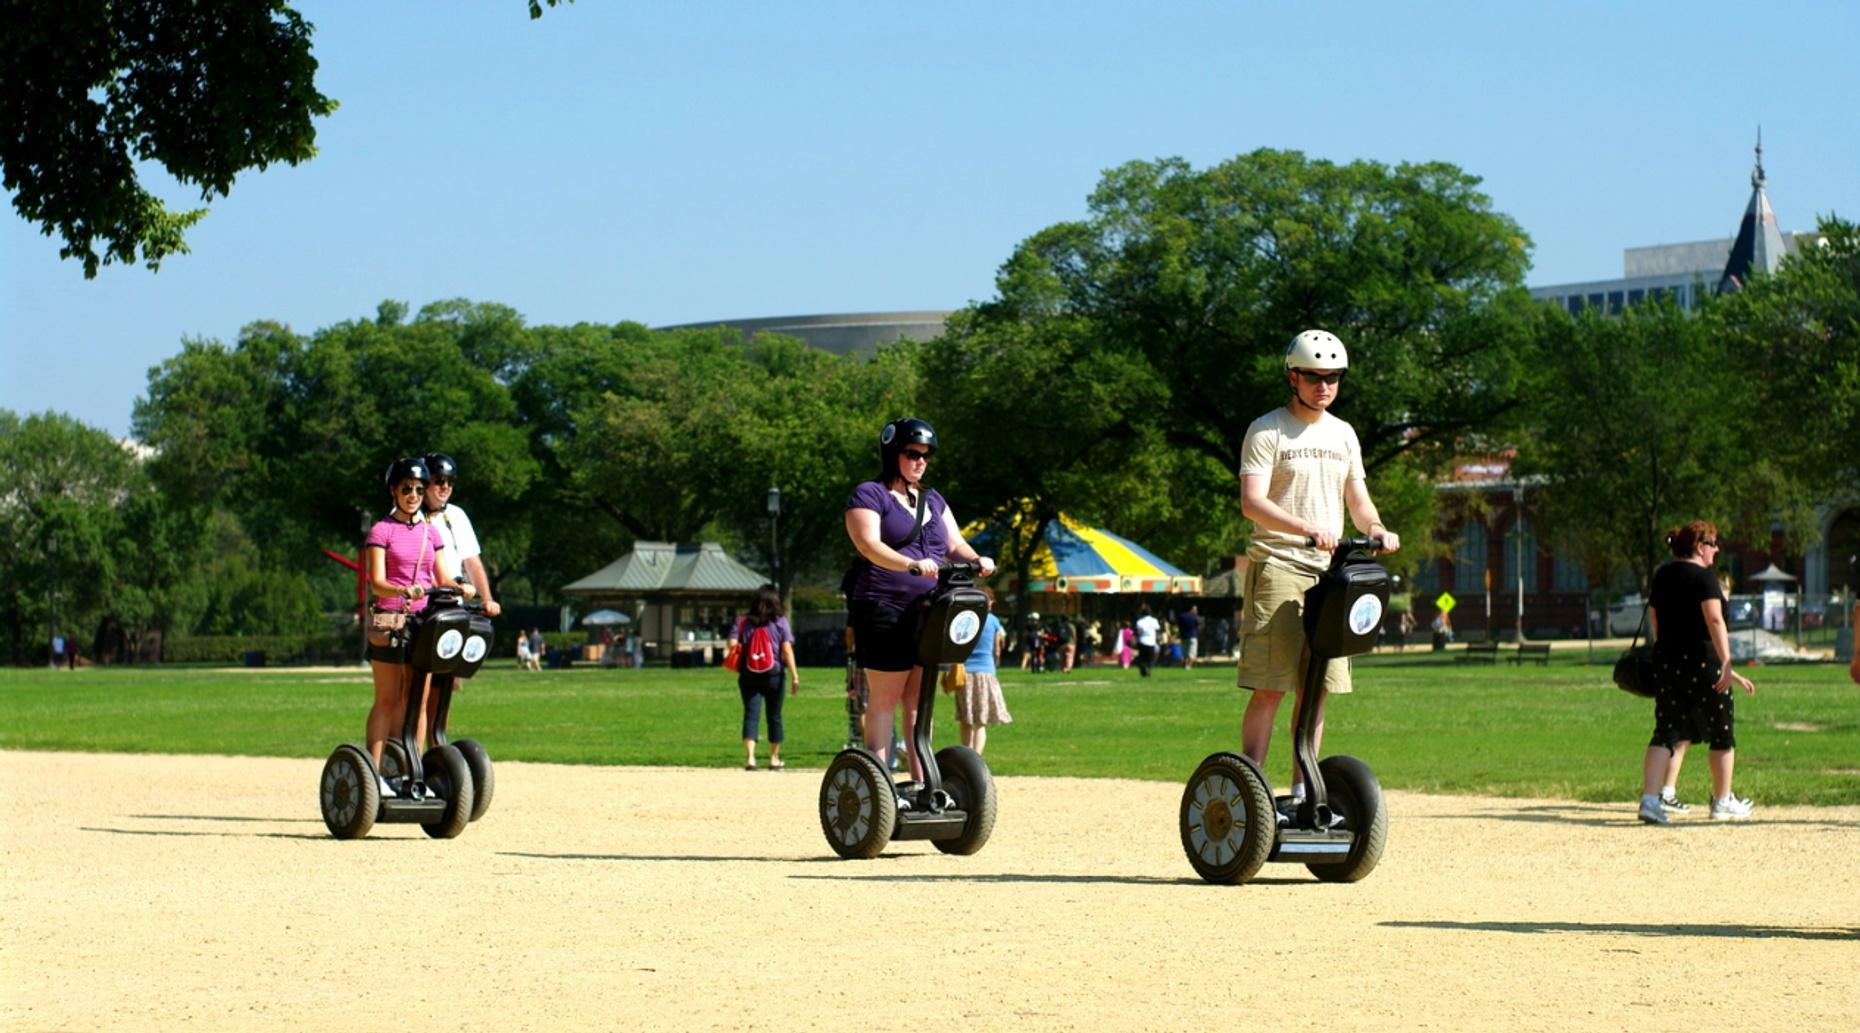 Segway Saturday Tour in Cantigny Park